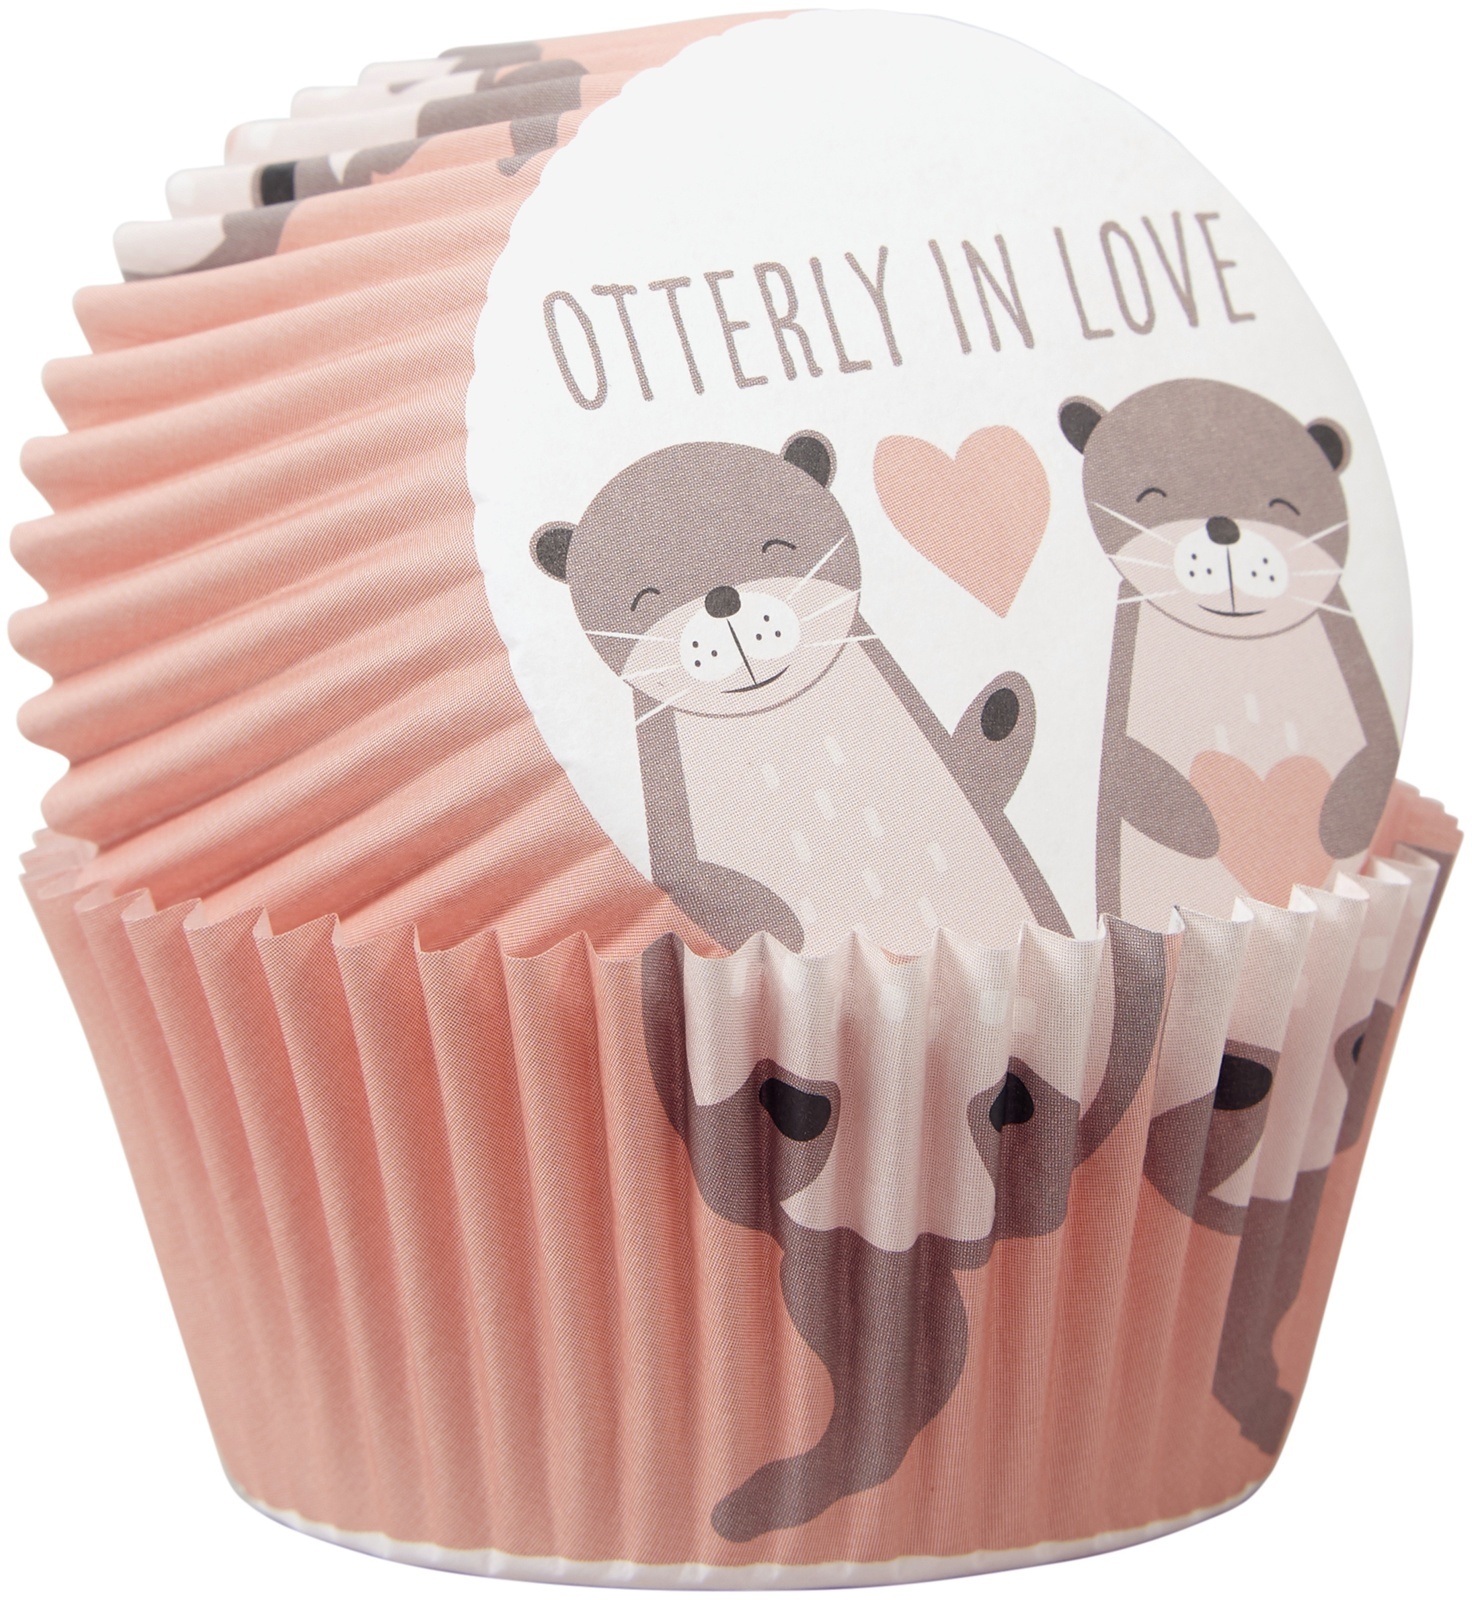 Primary image for Cupcake Decorating Kit-Otterly In Love